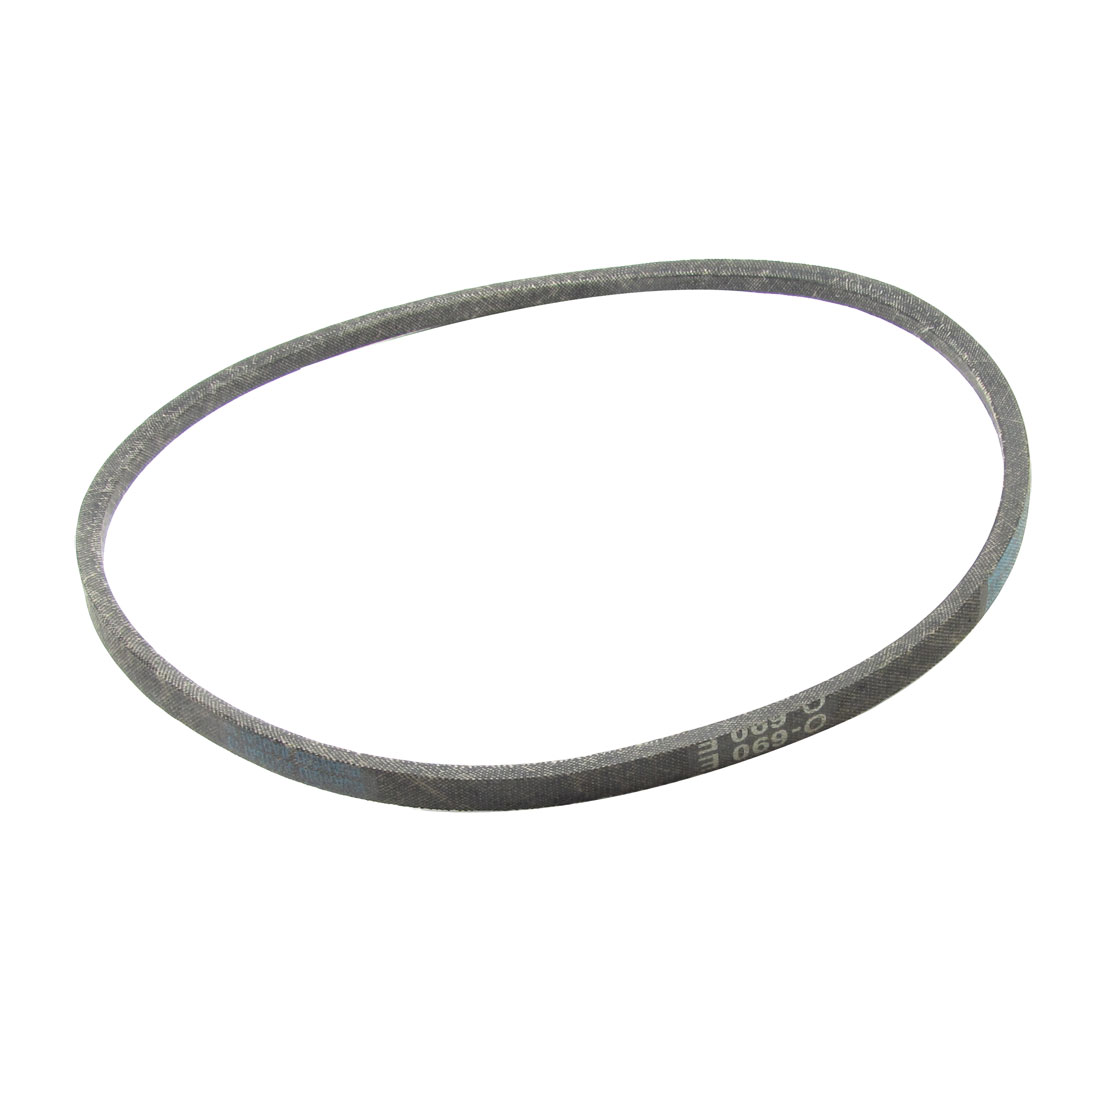 "27 23/64"" Inner Girth Rubber Transmission Belt O-690E for Washing Machine"